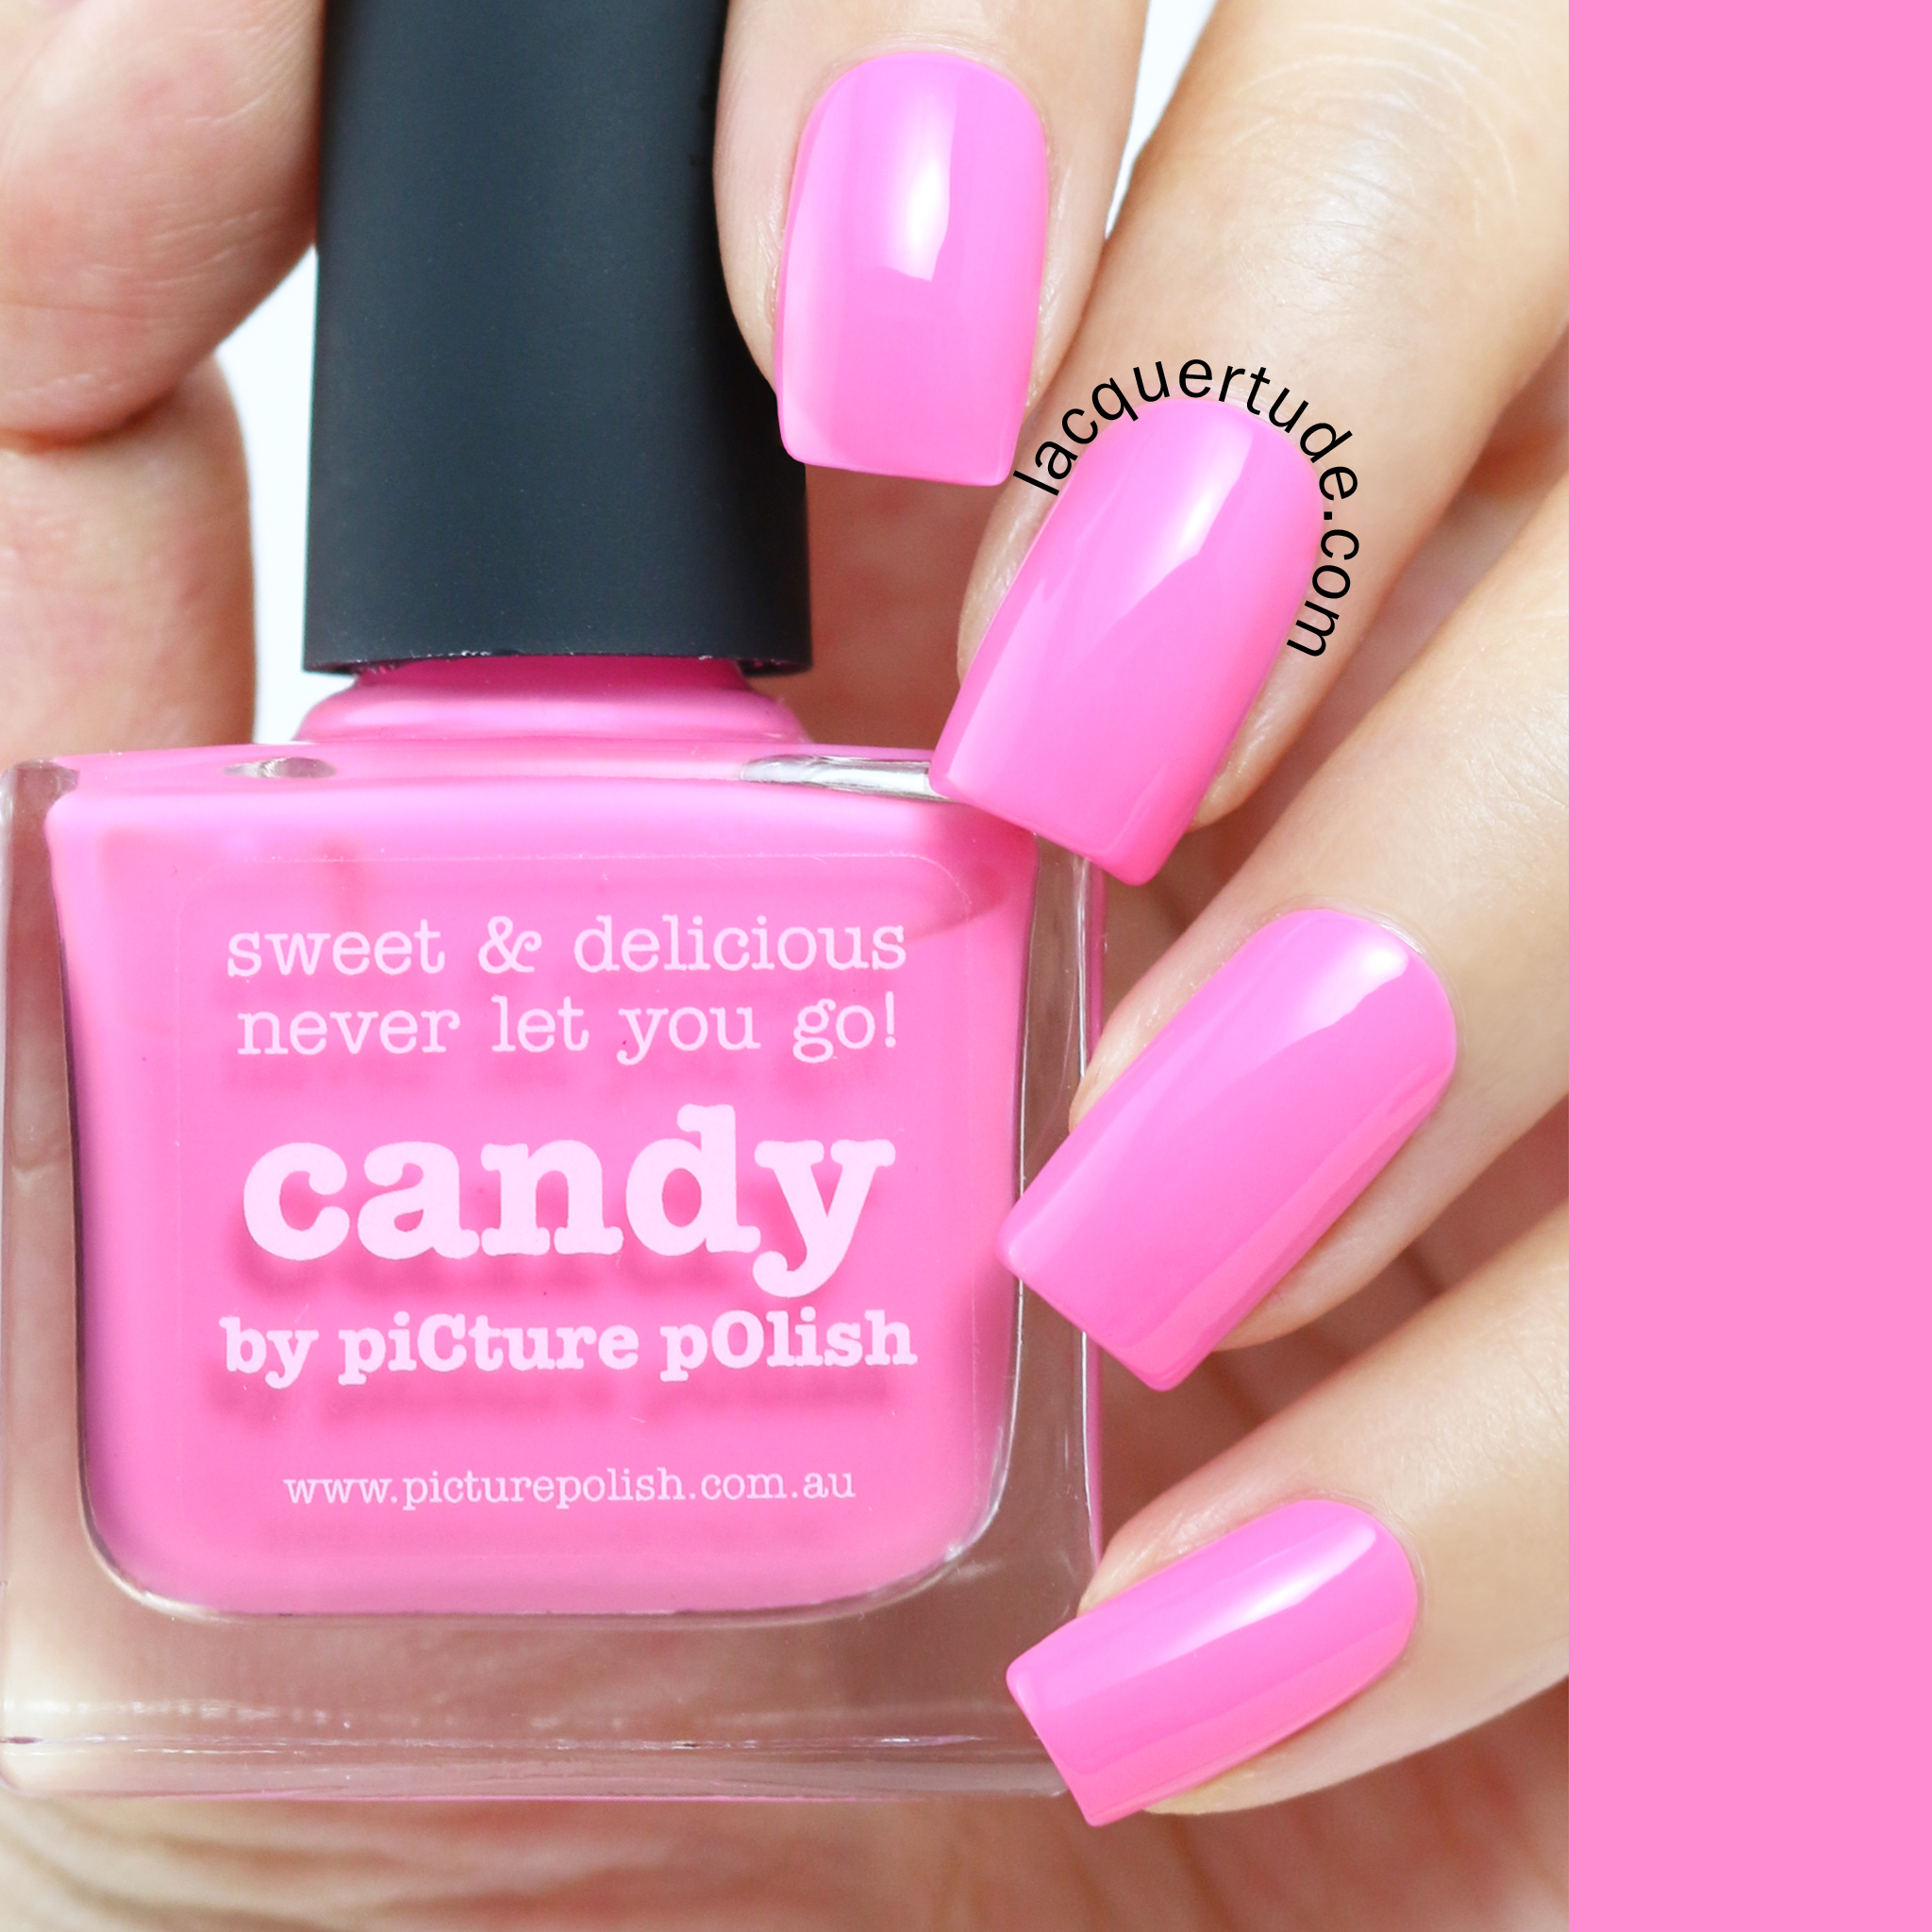 Lacquertude_Picture Polish Candy Swatch